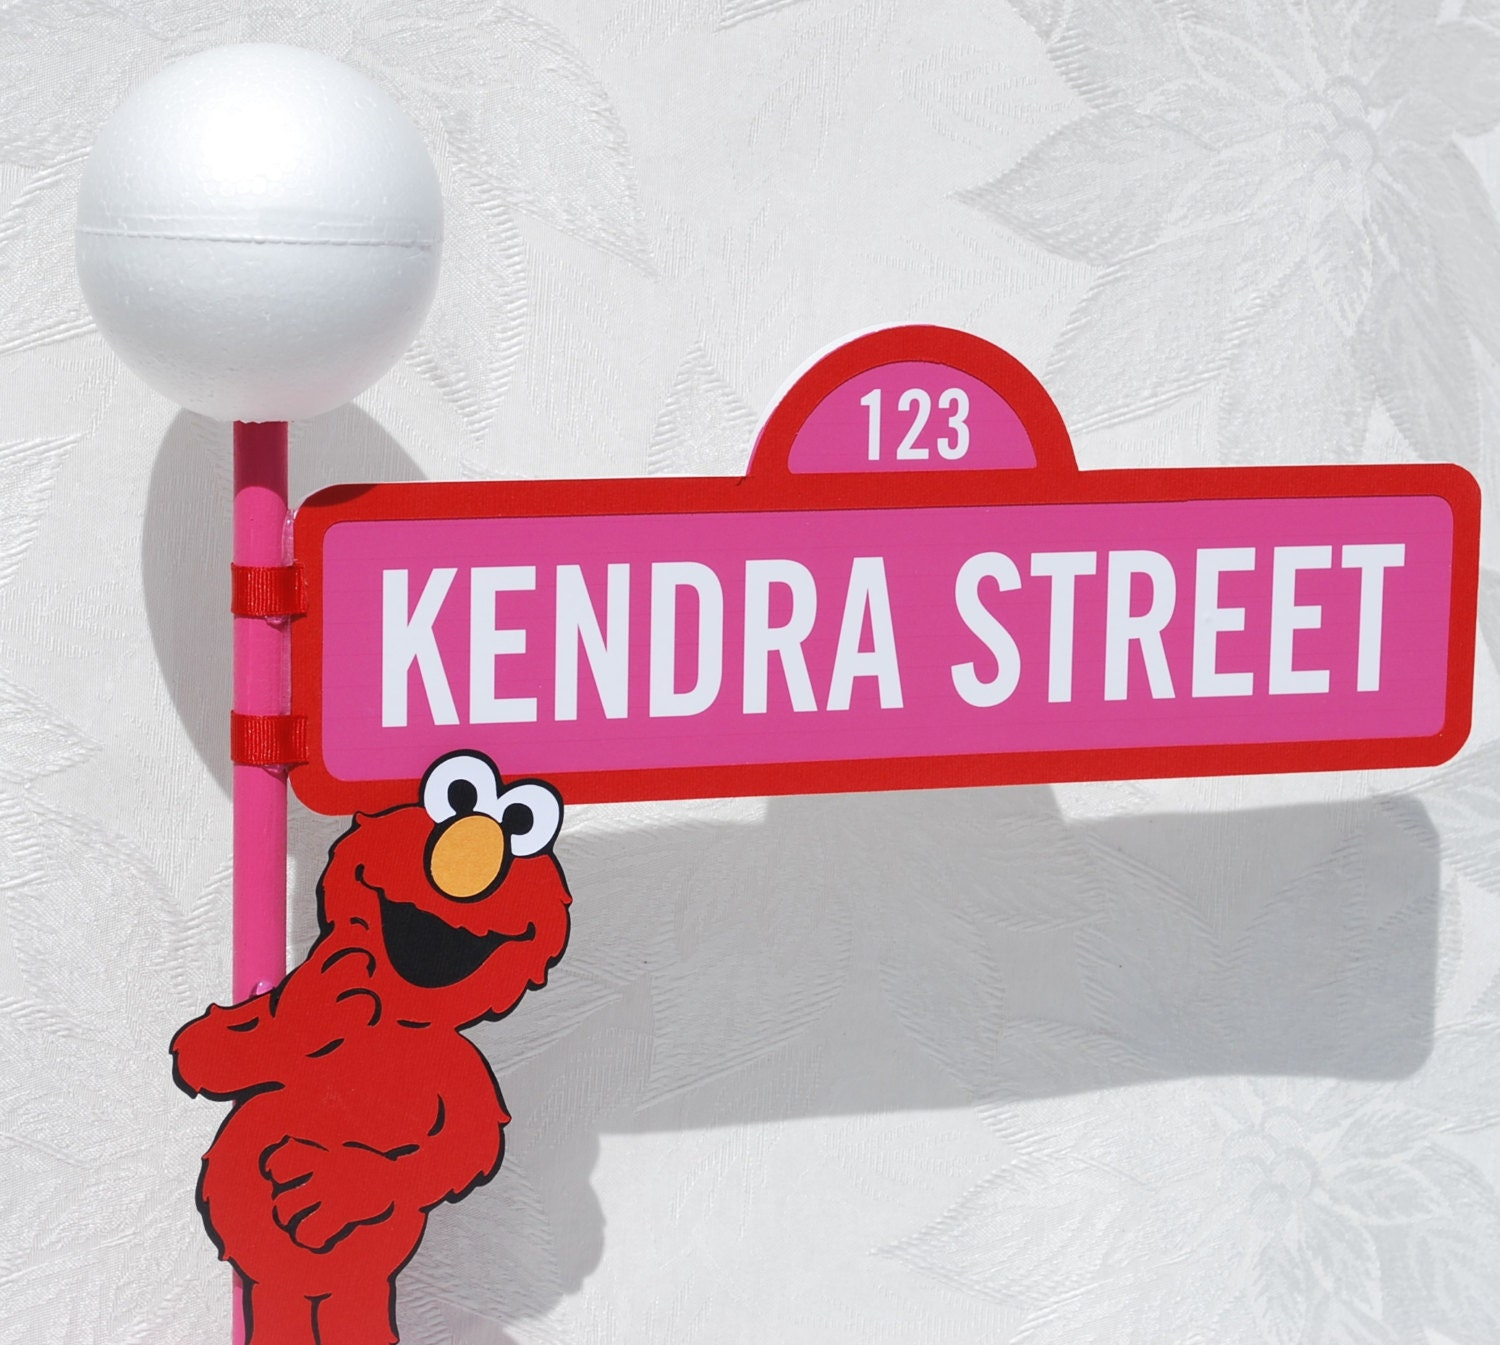 sesame street sign with lamppost and elmo character in pink